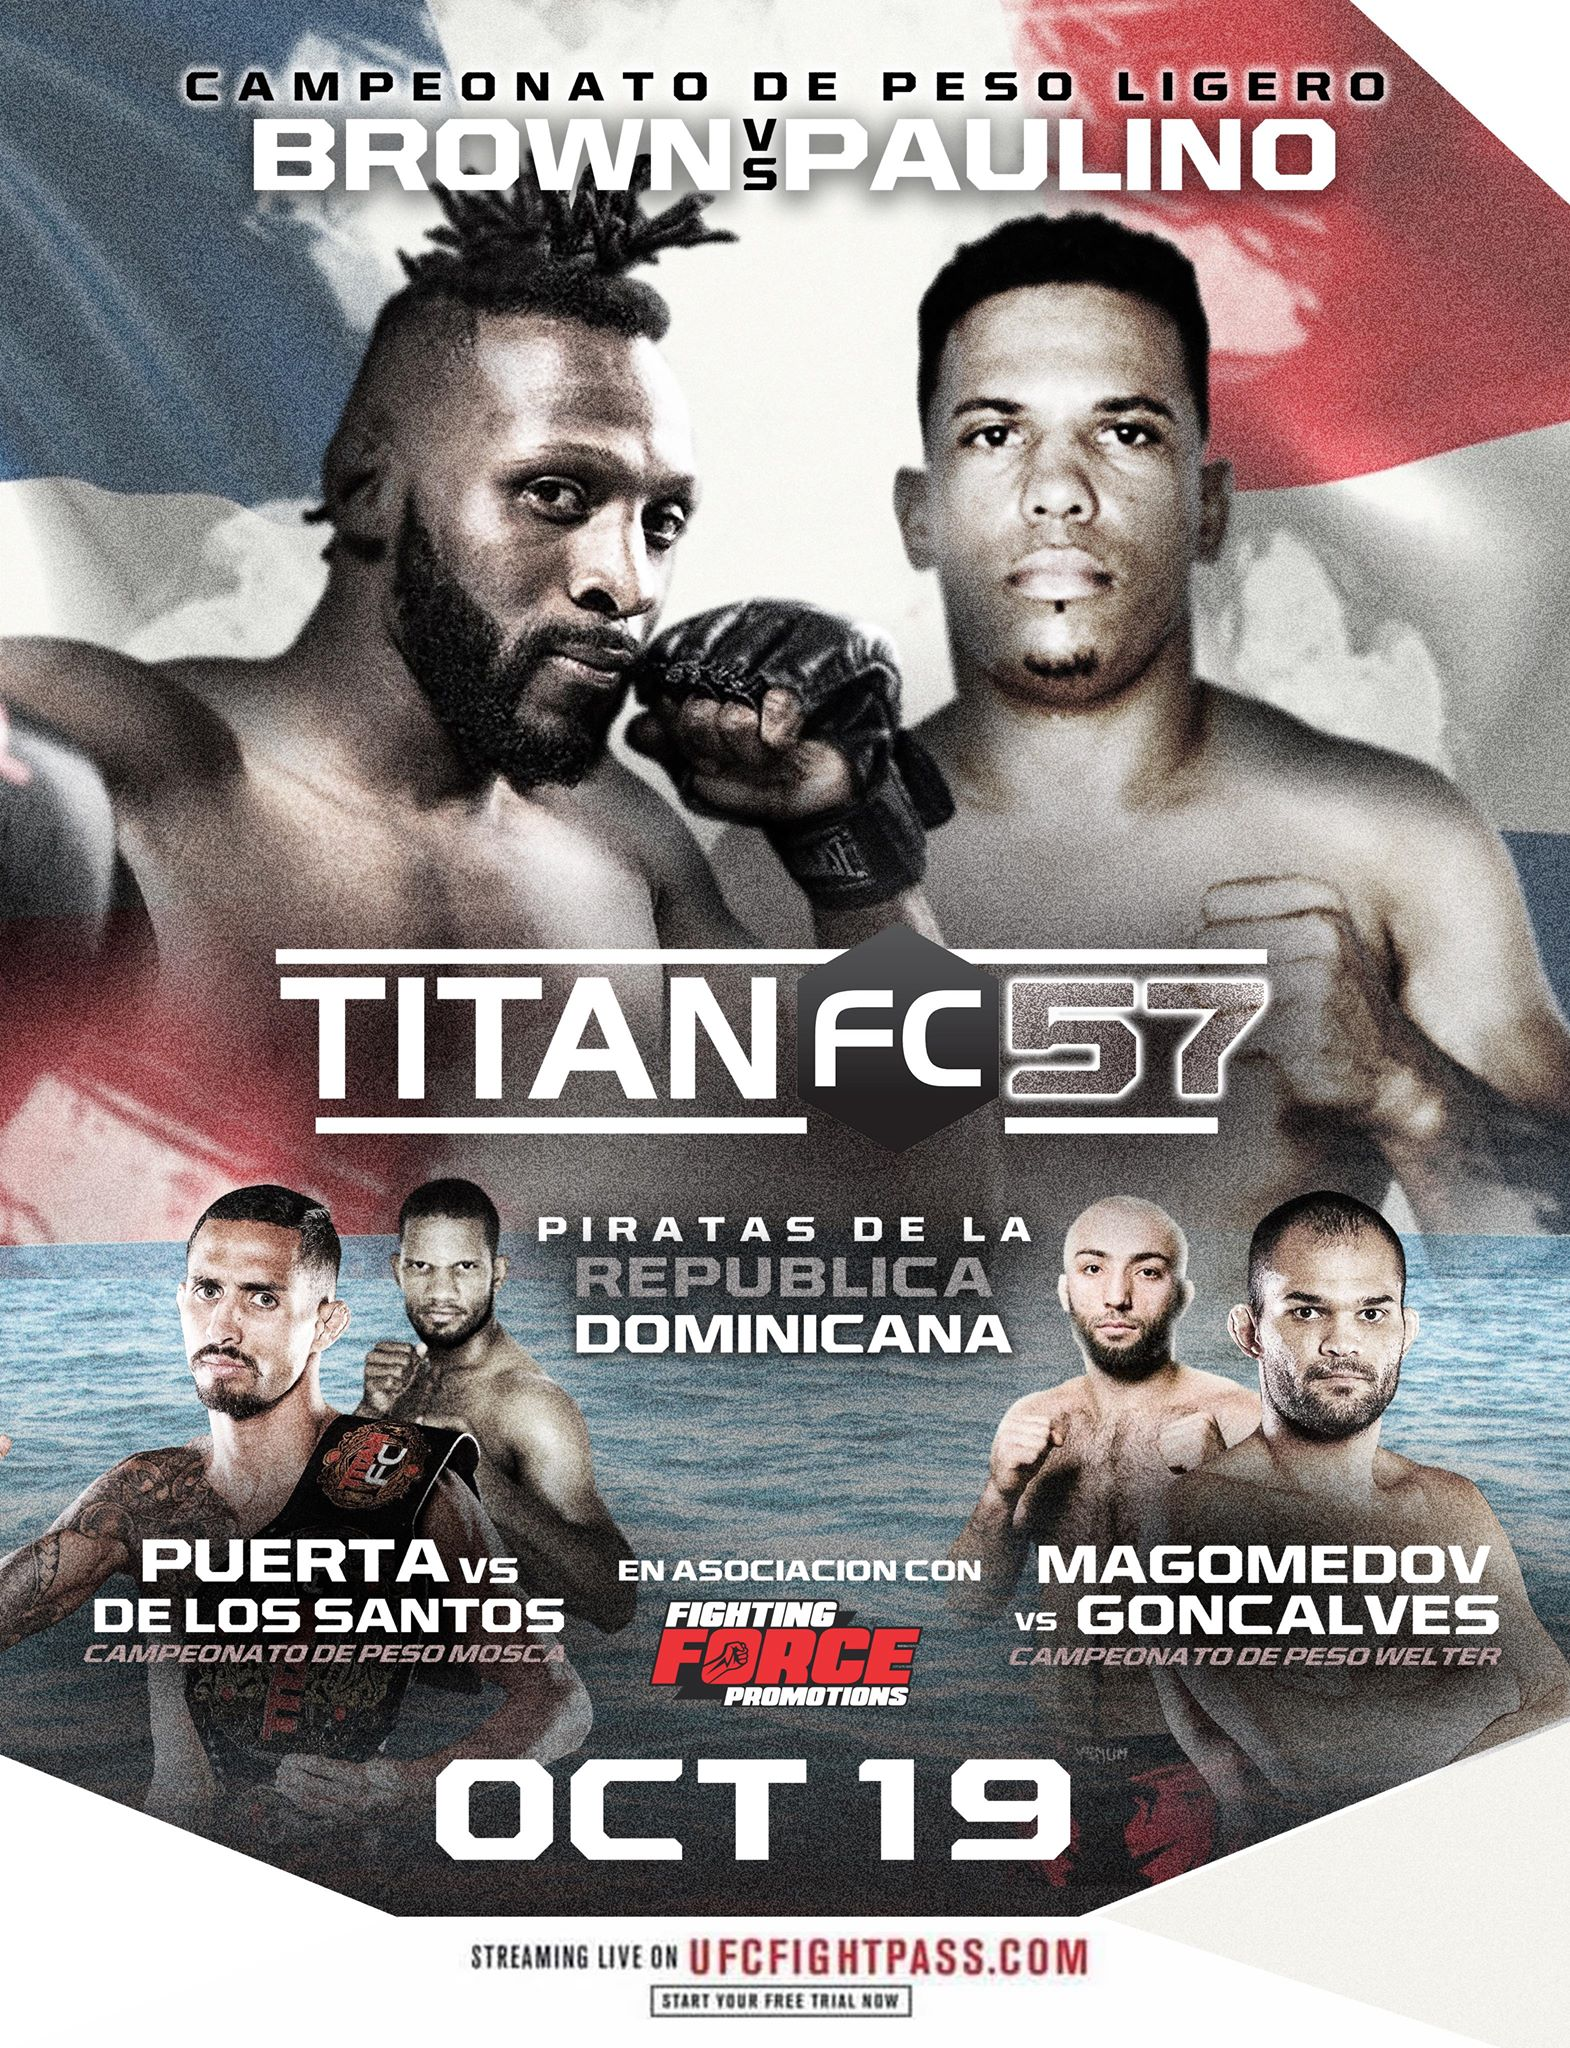 Michael Graves injured, Martin Brown title defense bumped to Titan FC 57 main event - Titan FC